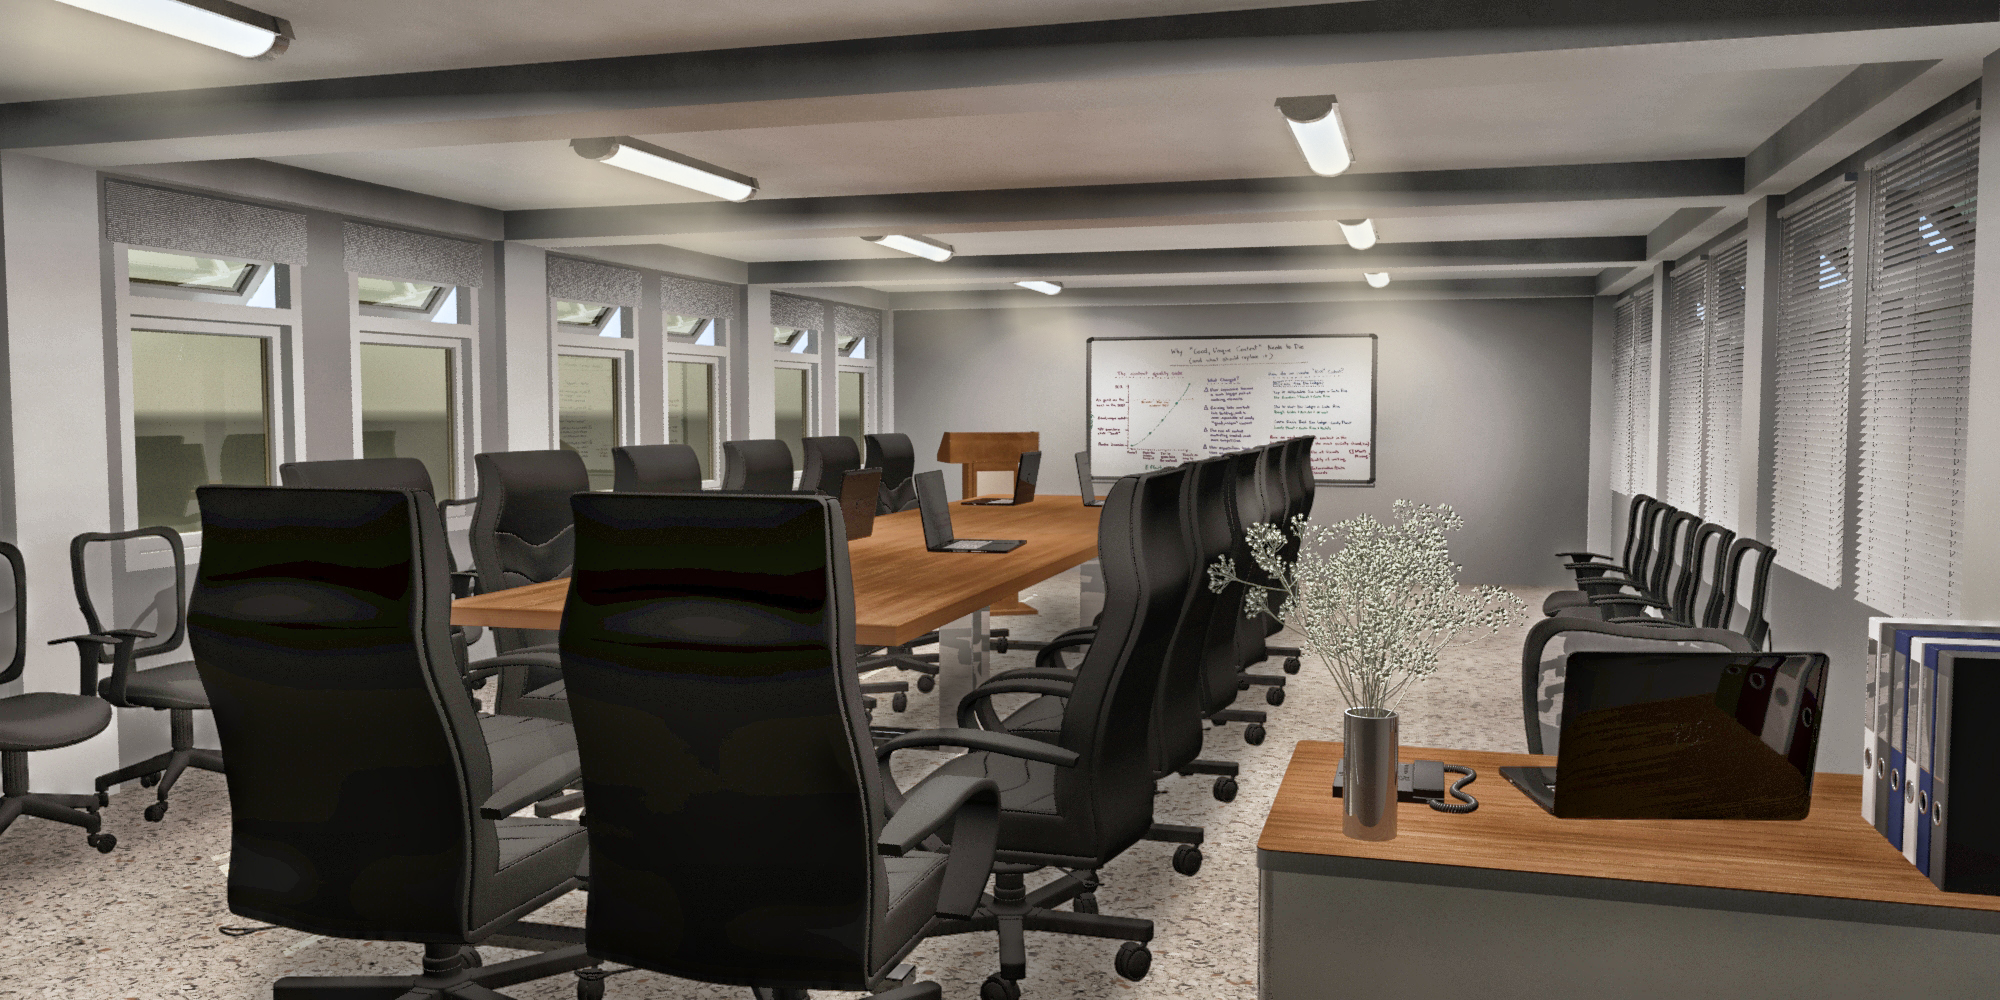 INTERIOR - CONFERENCE ROOM.jpg